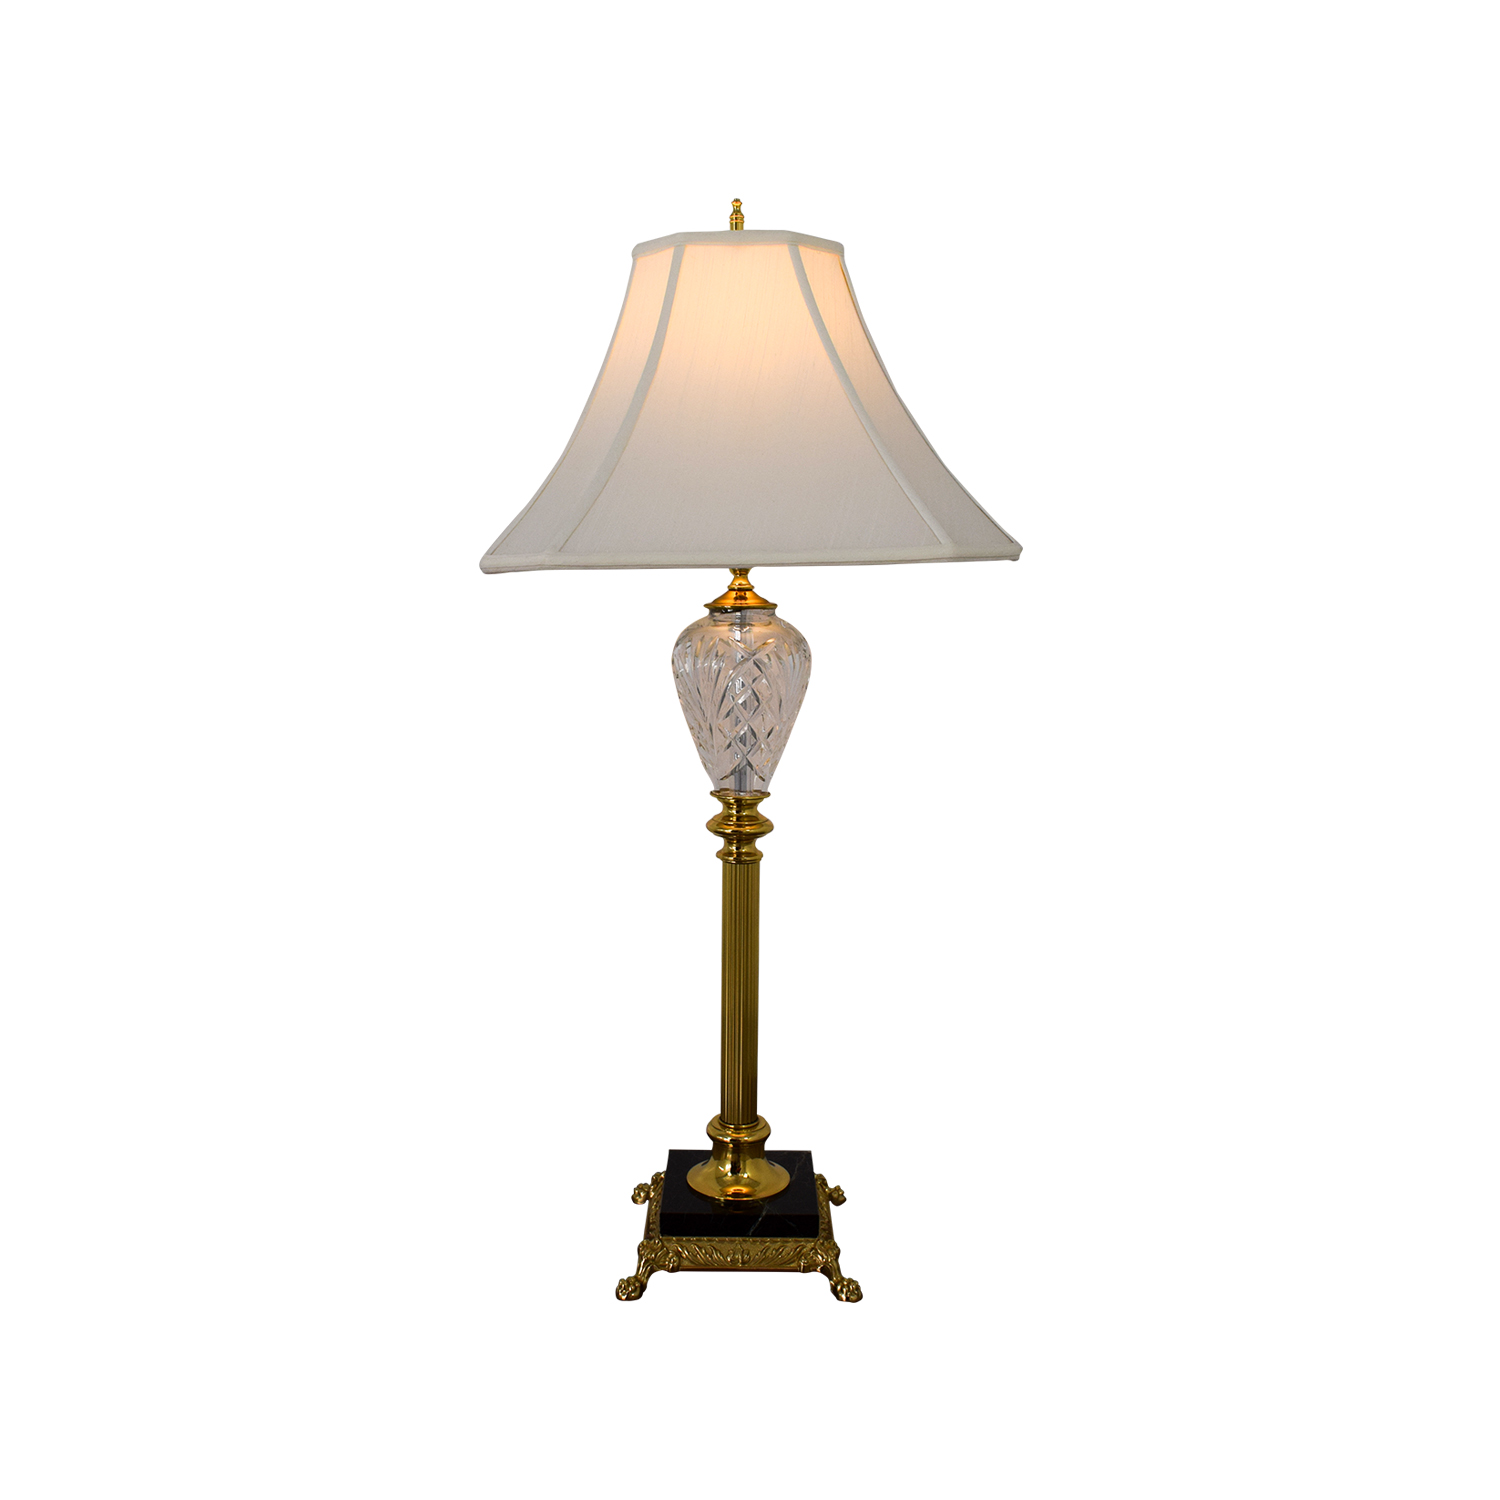 Waterford Lismore Glass and Gold Lamp / Lamps